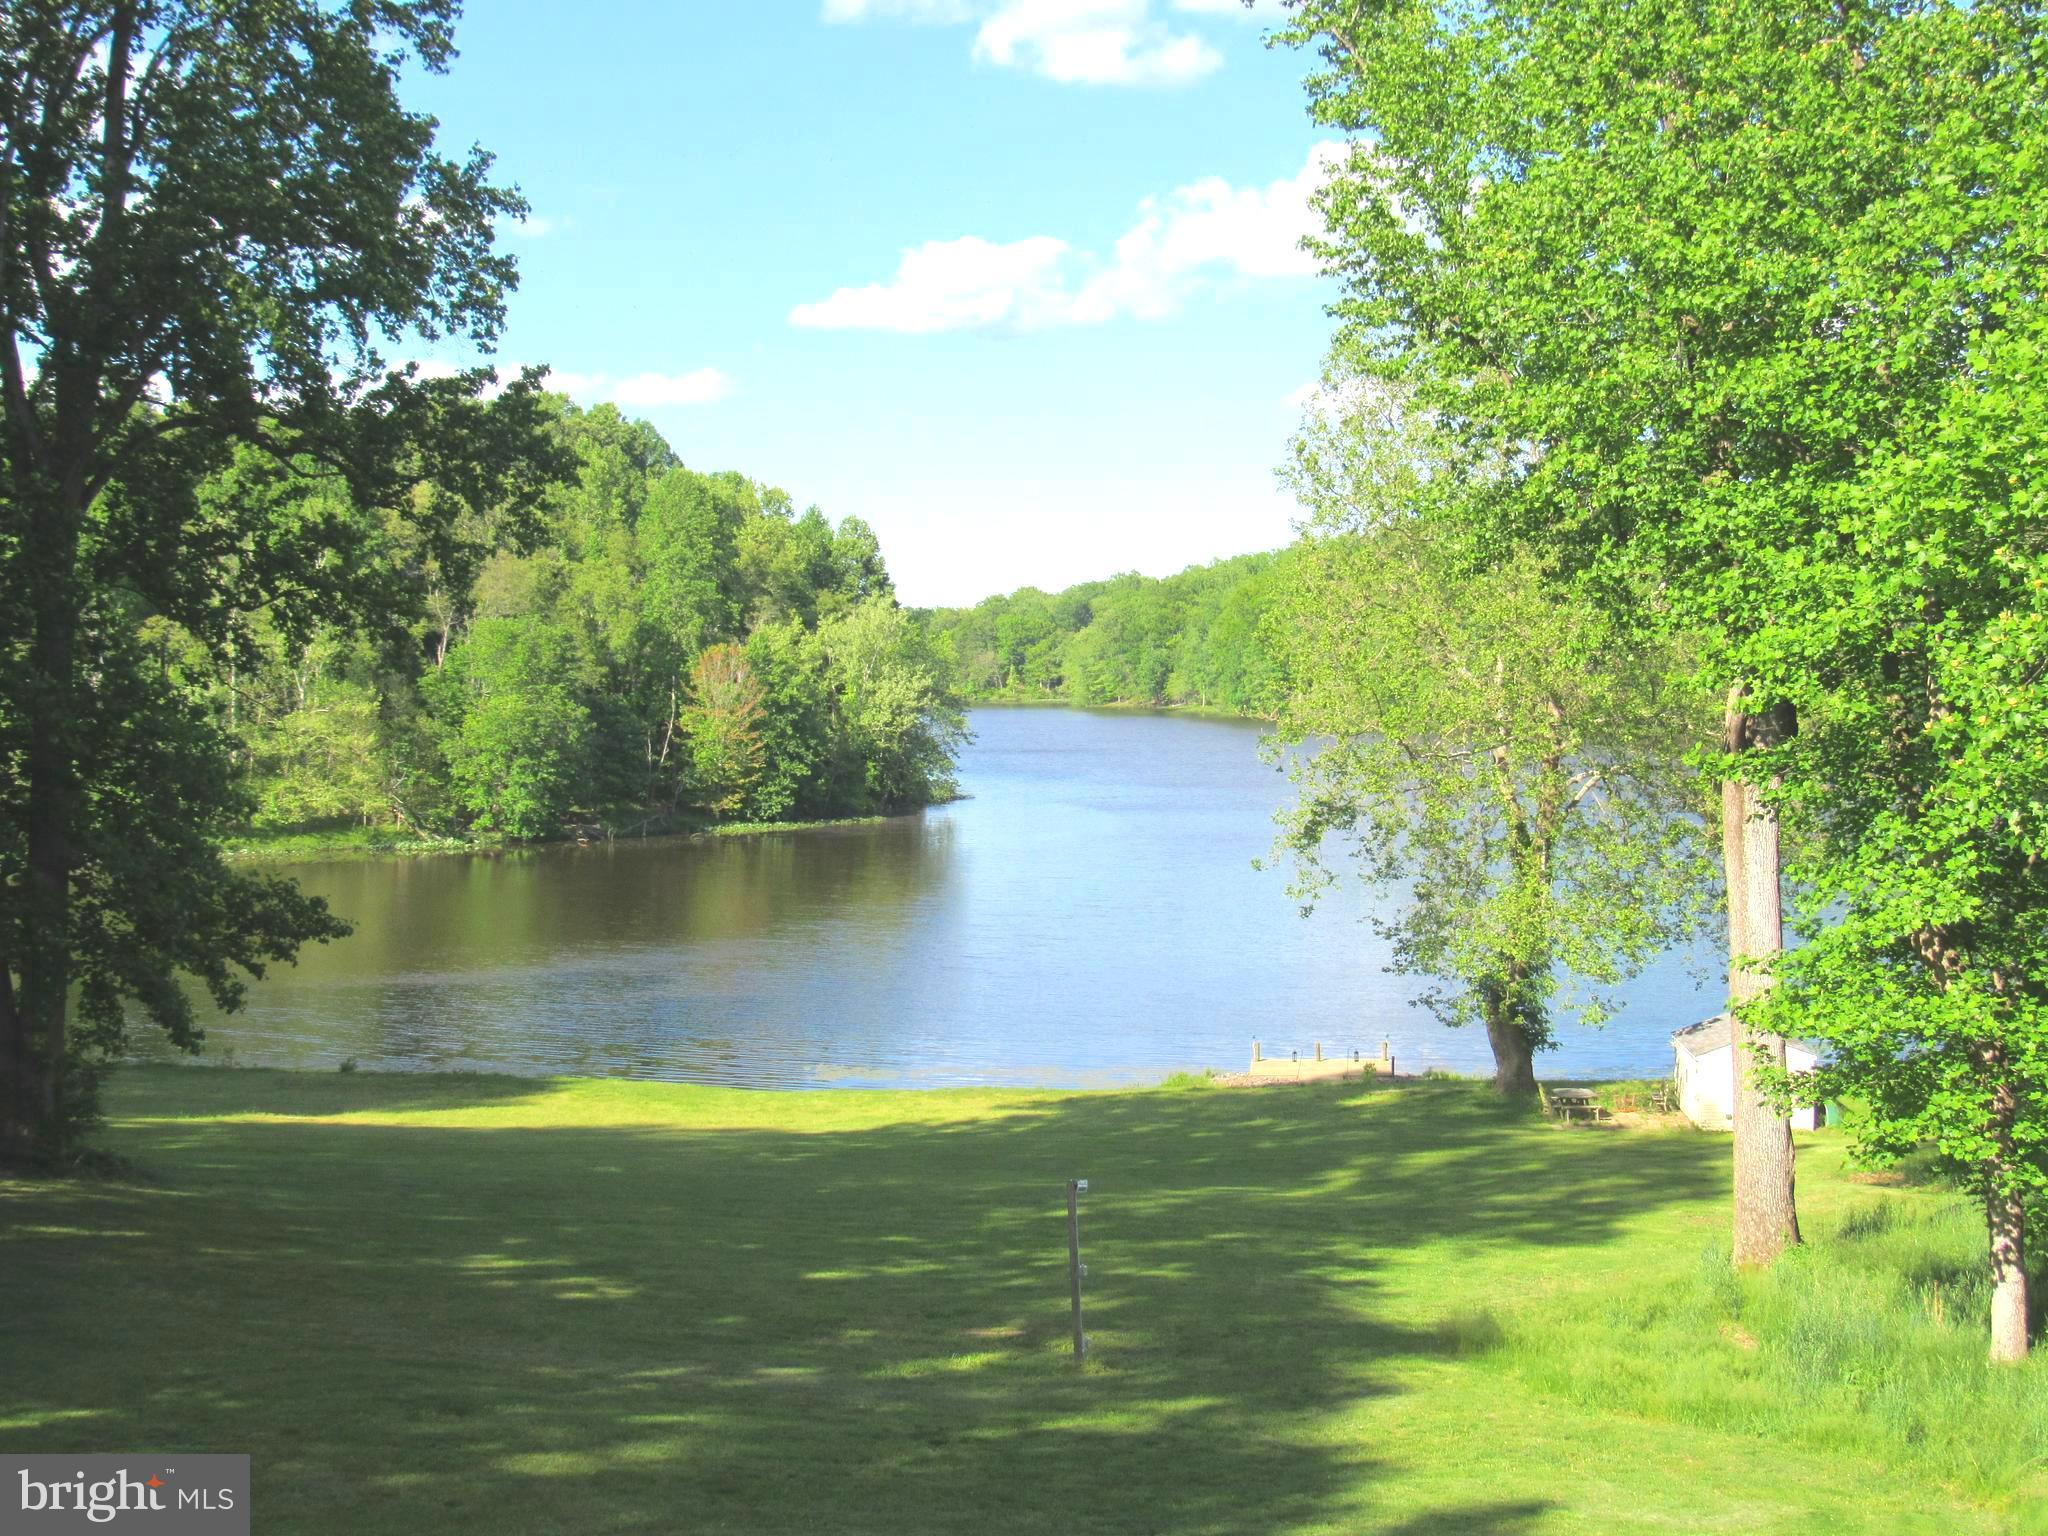 Million Dollar Views !! Come home to this  stunning waterfront property on sought after Lake Jameson where you can escape to your own enchanted place.  Property features gorgeous lawn  with shoreline to the  lake  and a private pier with direct water access  for swimming, fishing, boating  or relaxing.  You can also relax at your own swimming pool or on the screened porch, patio or one of several decks which all  have gorgeous views of the lake.  There is a storage shed at the lake to store all your water toys and equipment. House has room for everyone  5400 +  finished square feet with 6 bedrooms and 5 1/2 bathrooms. The main house has 5 bedrooms  and 4 1/2 bathrooms .  There is also a living room, separate dining room family room with propane fireplace.  Gorgeous staircase to  upper level has large master bedroom with newly renovated master bathroom  with a huge  luxury shower, double vanities and beautiful ceramic tile. There are 3 additional  bedrooms and a  bathroom also upper level laundry room.  Walk out lower level features family room/office,  bedroom,  2 full  bathrooms with access out the back to the pool and lake. Stunning views  of the lake from almost every room including the lower level. Home also has an in-law apartment   with a separate entrance  featuring living room with gas fireplace , eating area, full kitchen , bedroom and full bathroom.  Apartment  also has  washer and dryer . This could be a great rental for additional income to off set the mortgage payment.  It could easily be made into a two bedroom apartment. There is a 2 car attached garage and detached 3 car garage  total of 1260+ sq ft of garage space and paved driveway for plenty of additional parking. The solar panel lease conveys with the property.